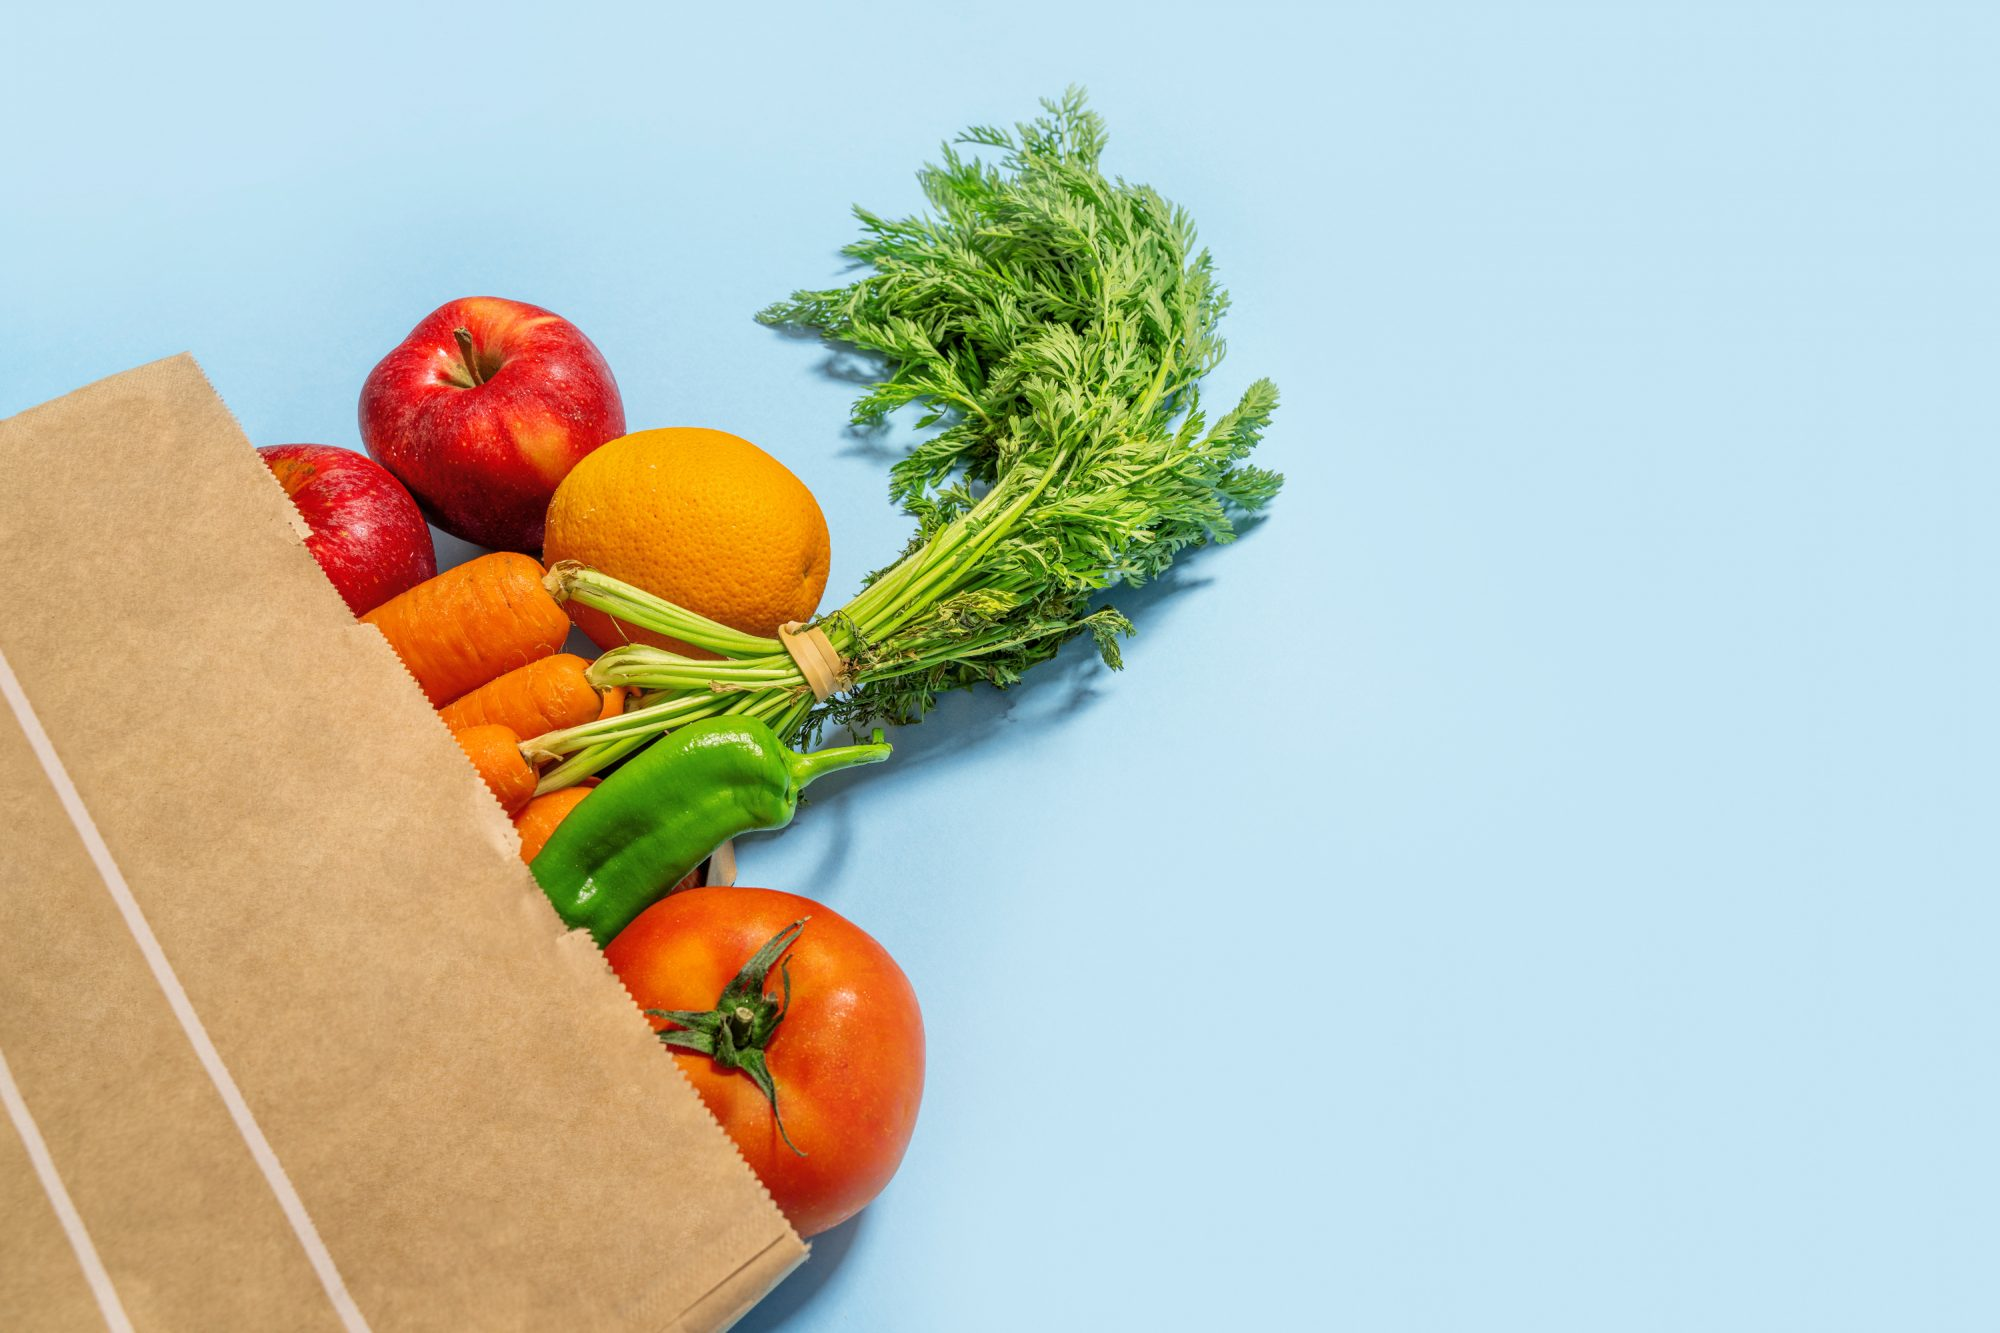 Grocery back of vegetables on a blue background